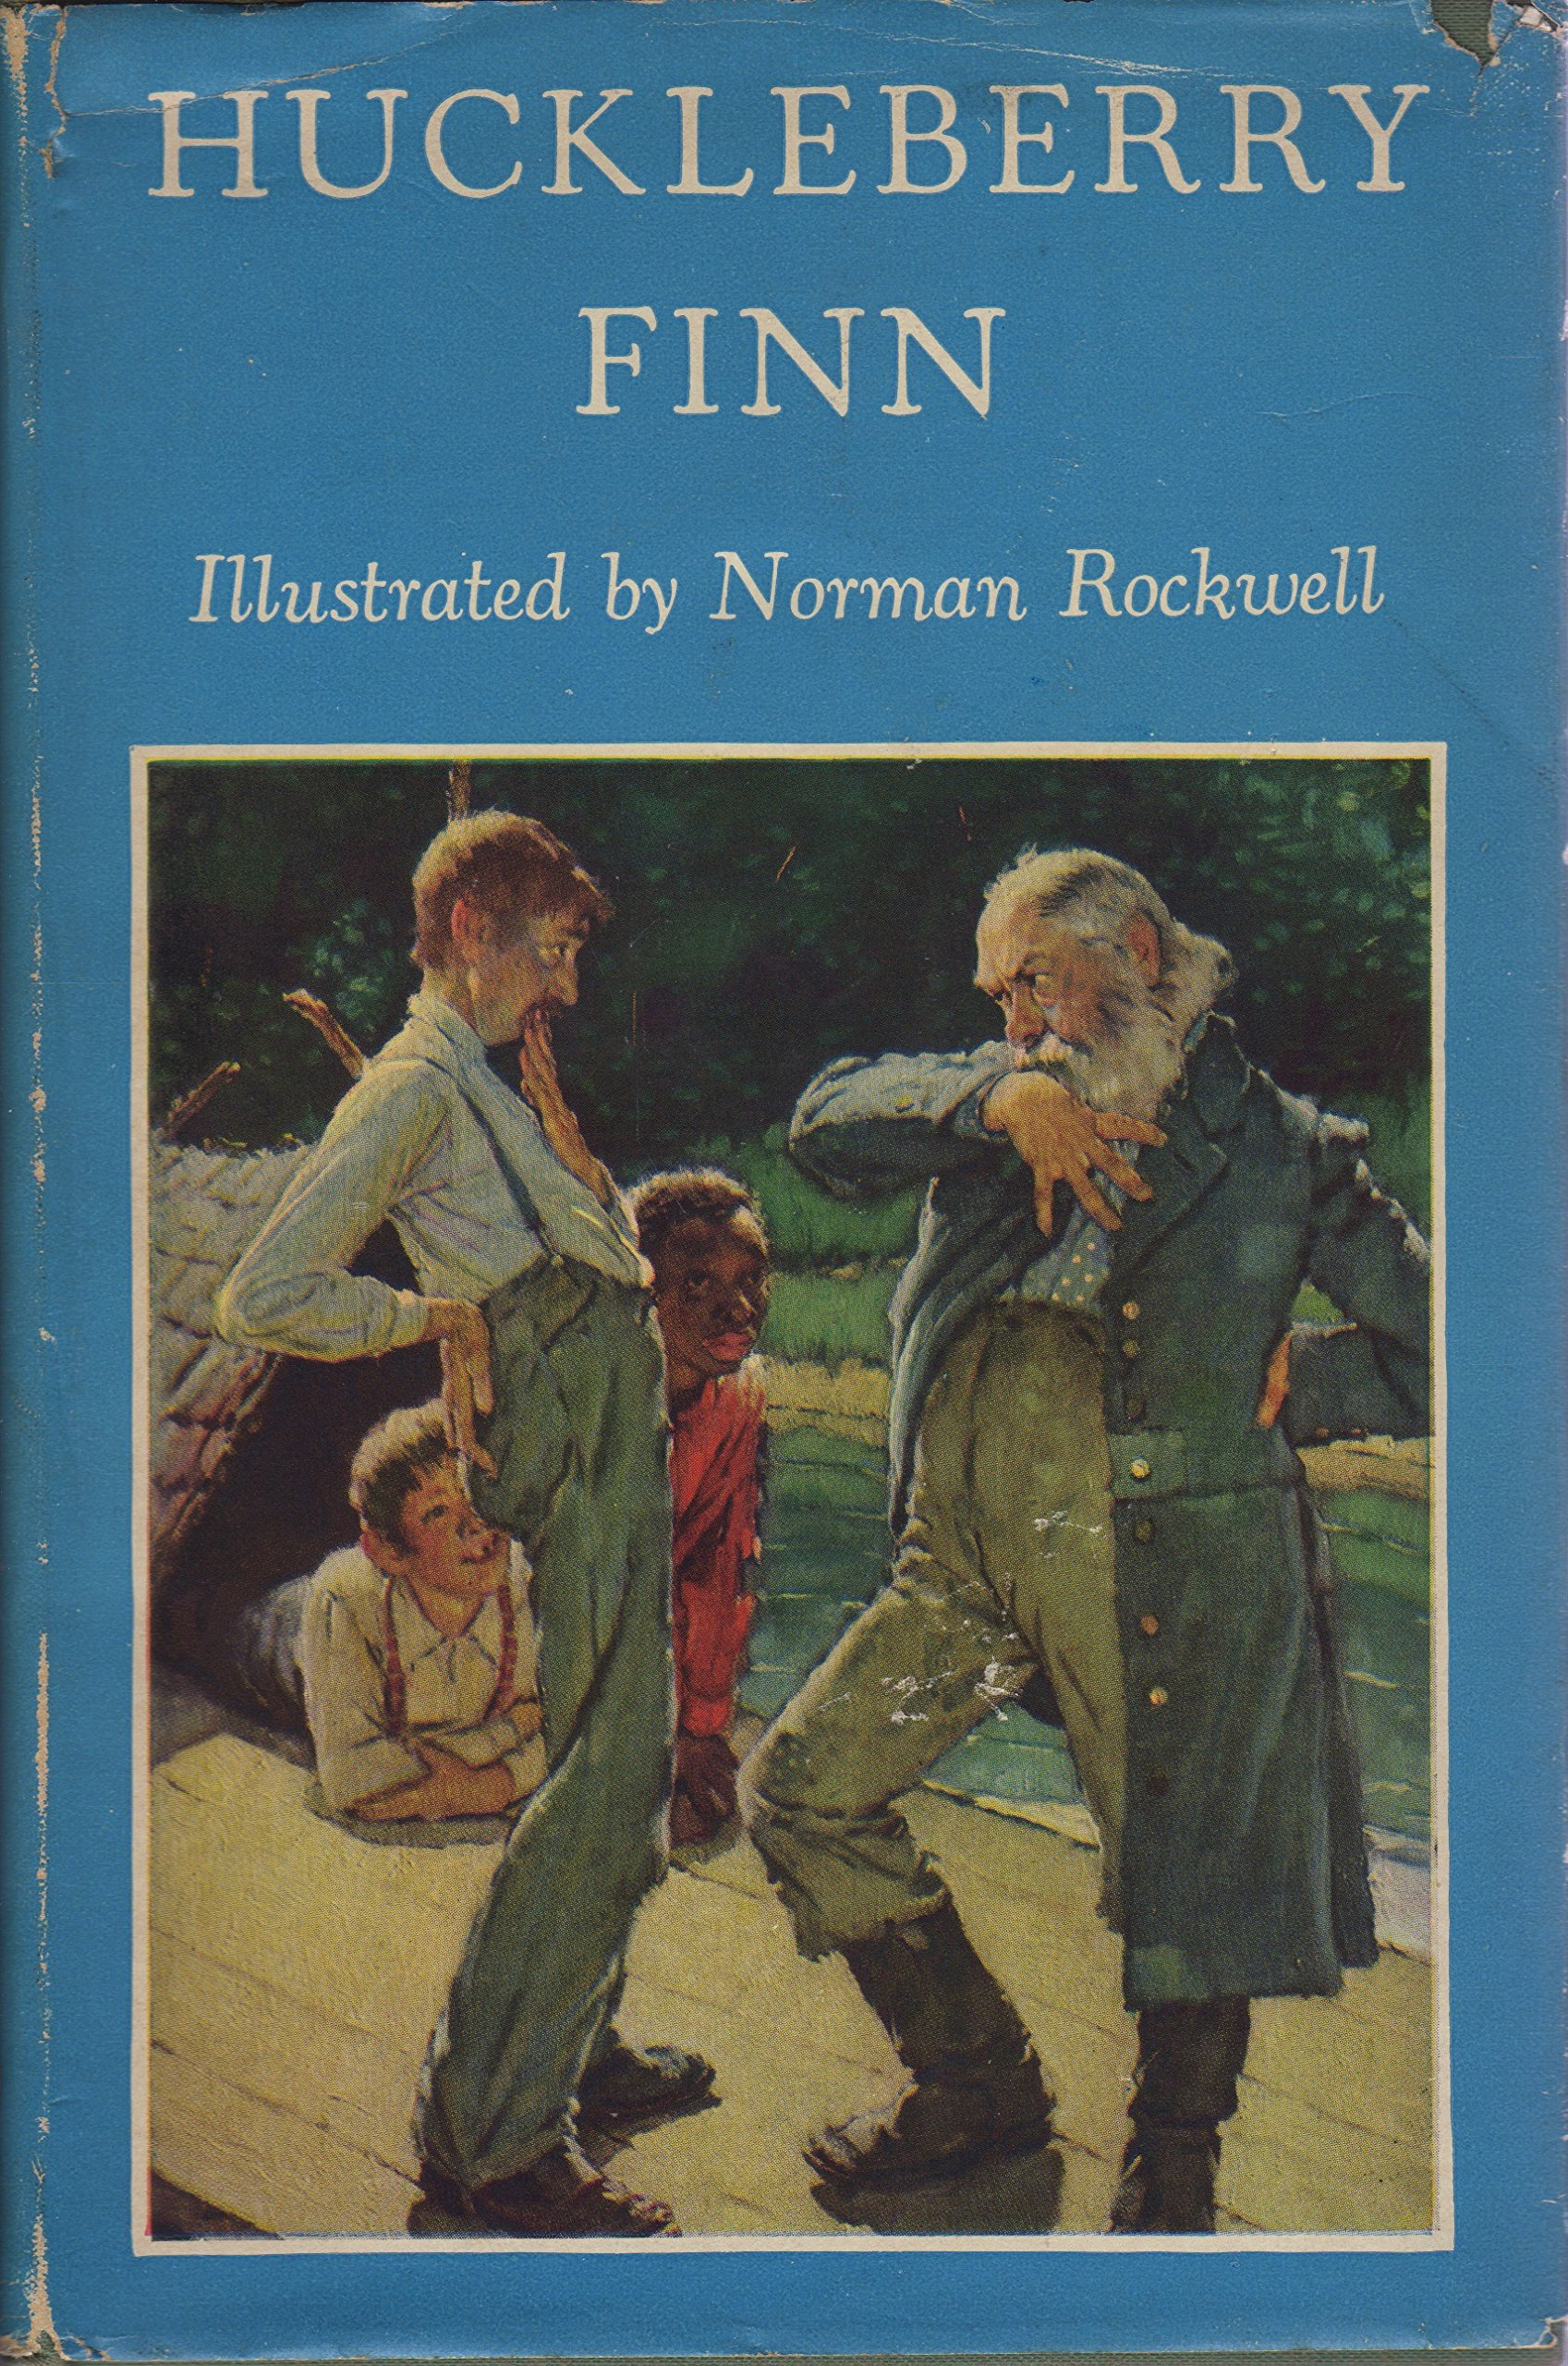 huckleberry finn illustrated by norman rockwell 1940